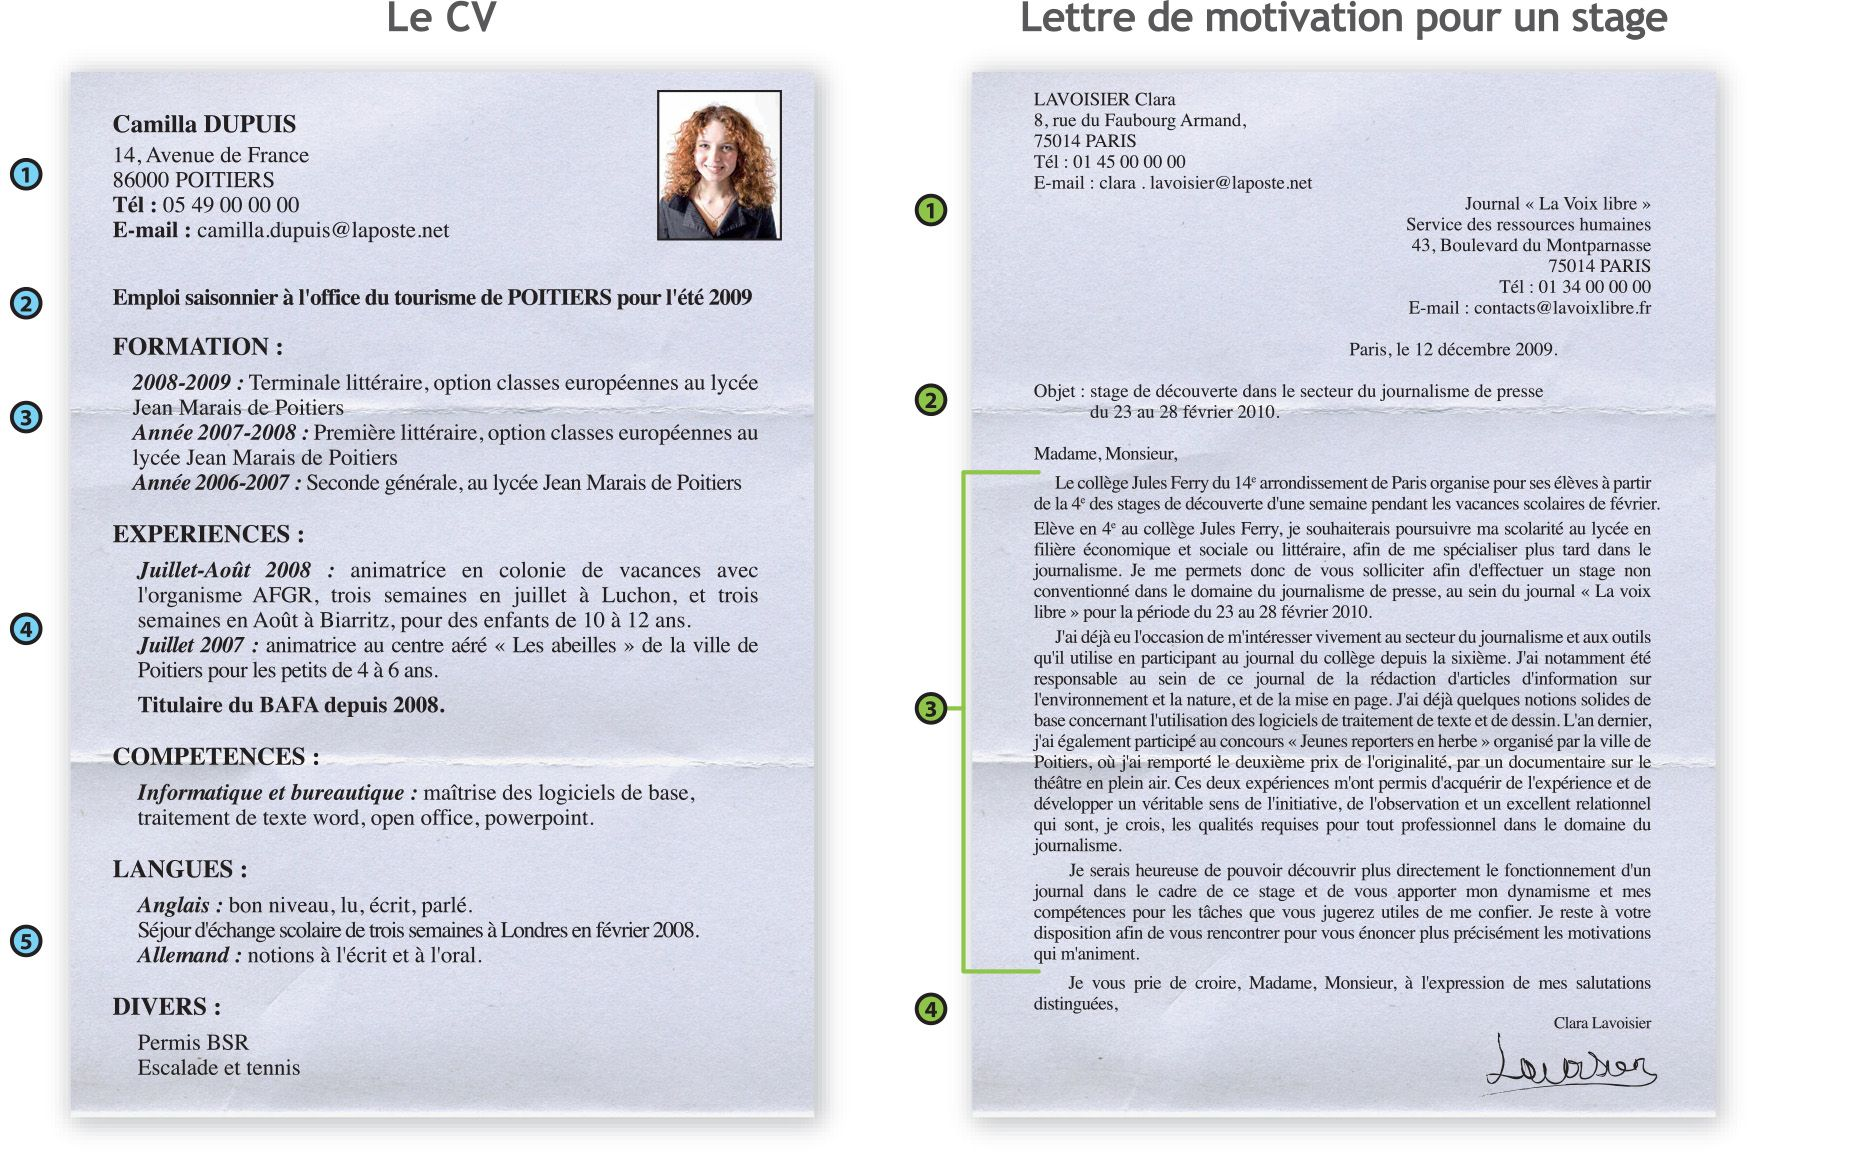 photo le cv lettre de motivation